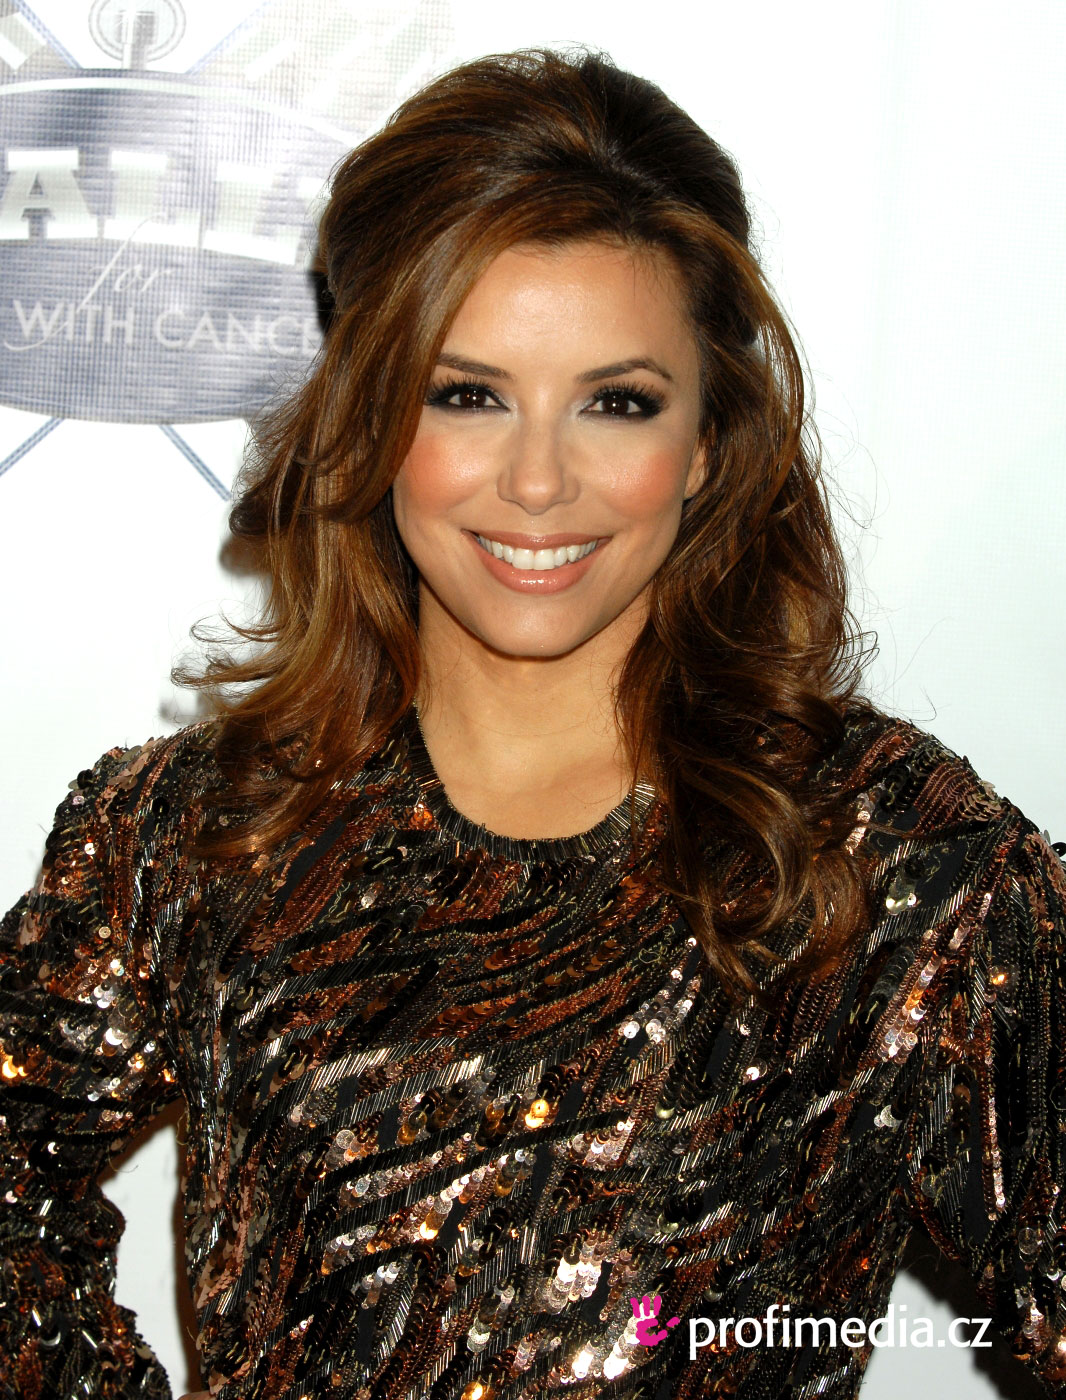 neue frisur eva longoria wie haare schneller wachsen. Black Bedroom Furniture Sets. Home Design Ideas